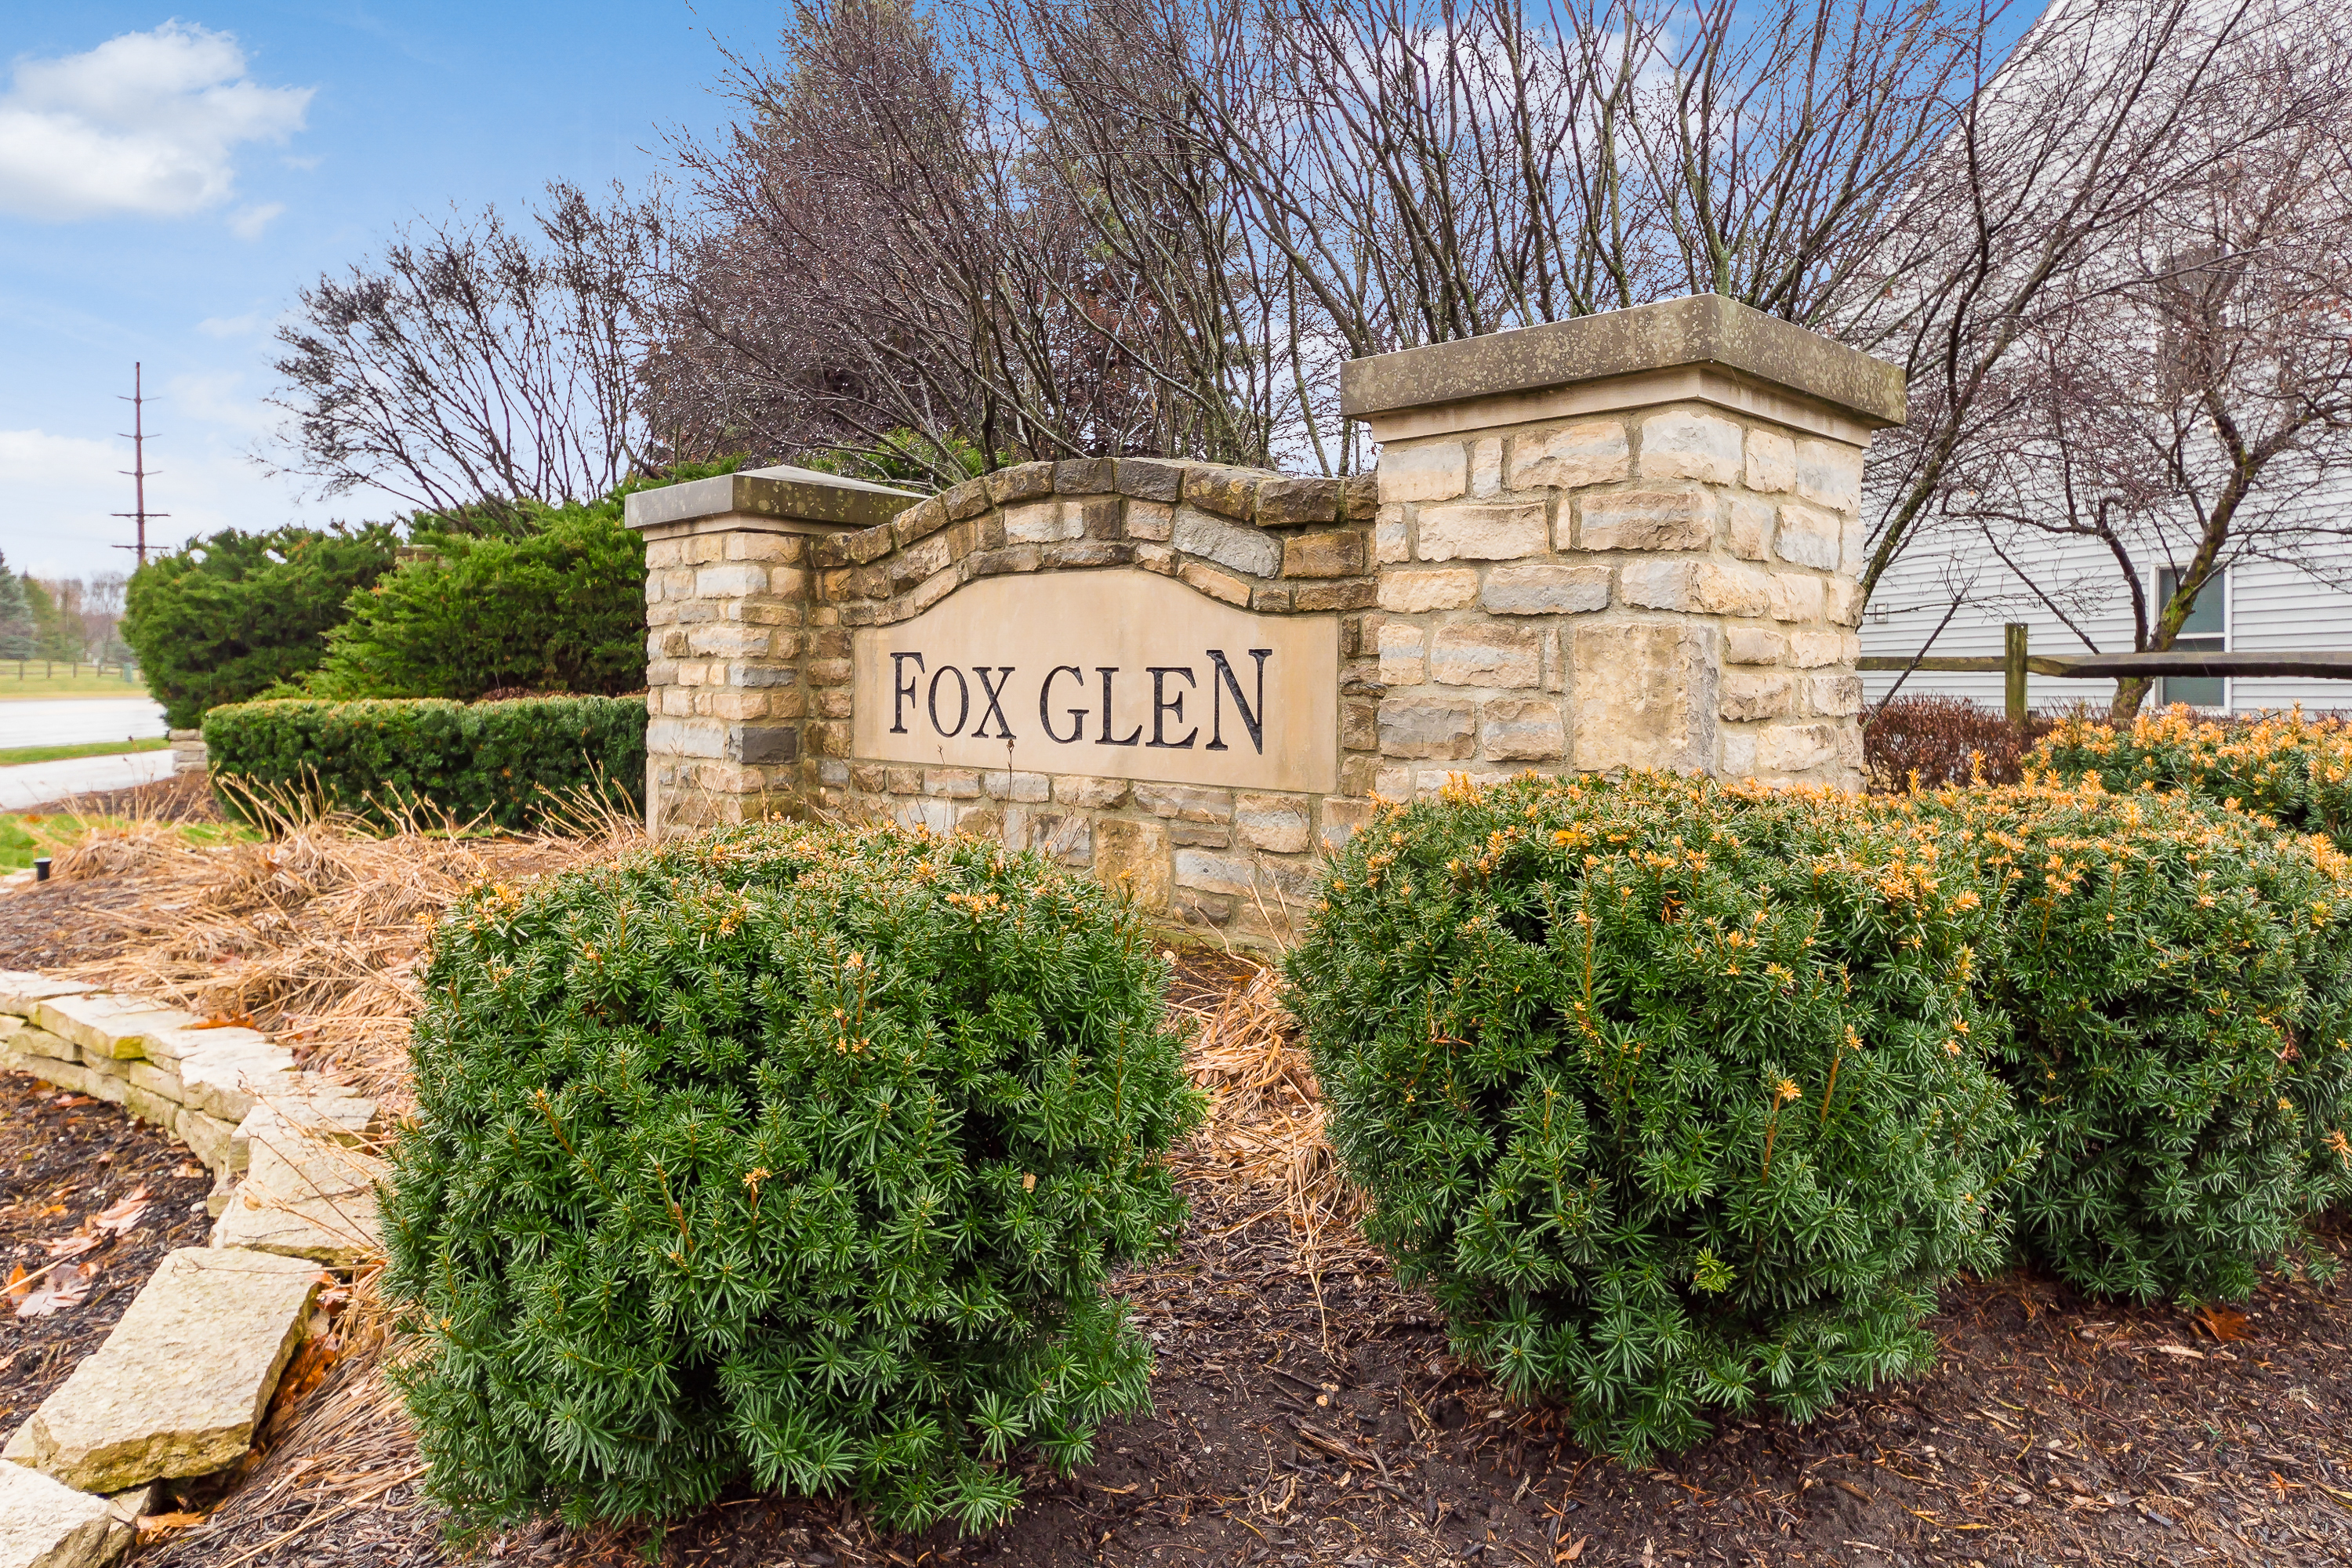 Fox Glen Pickerington OH